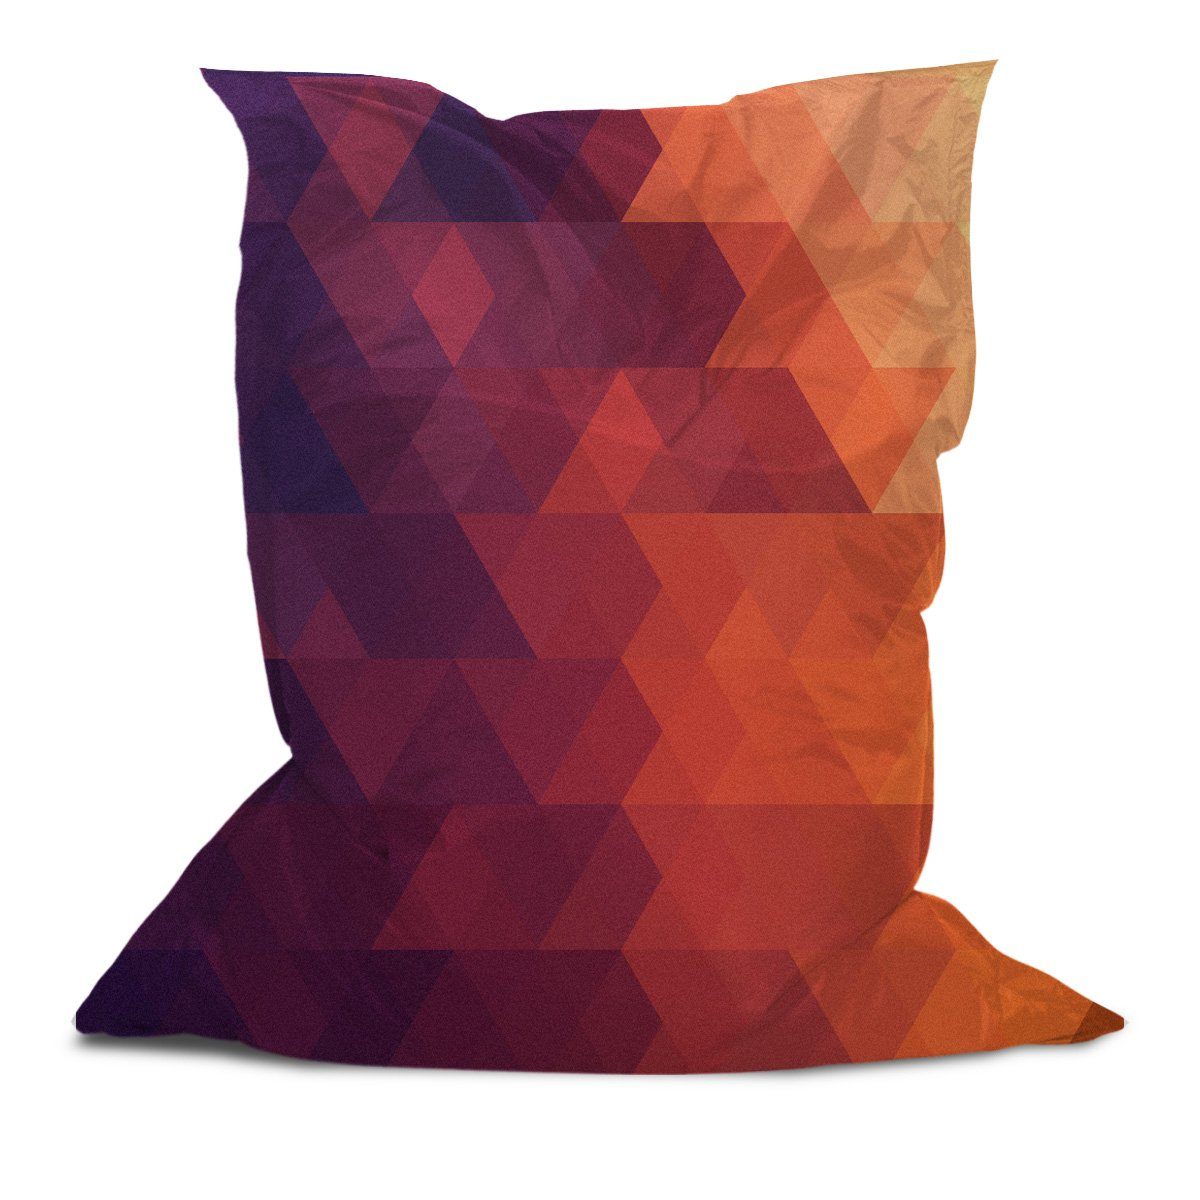 Branded Bean Bag with Printed Triangle Stripes (3) (3' x 4.4')